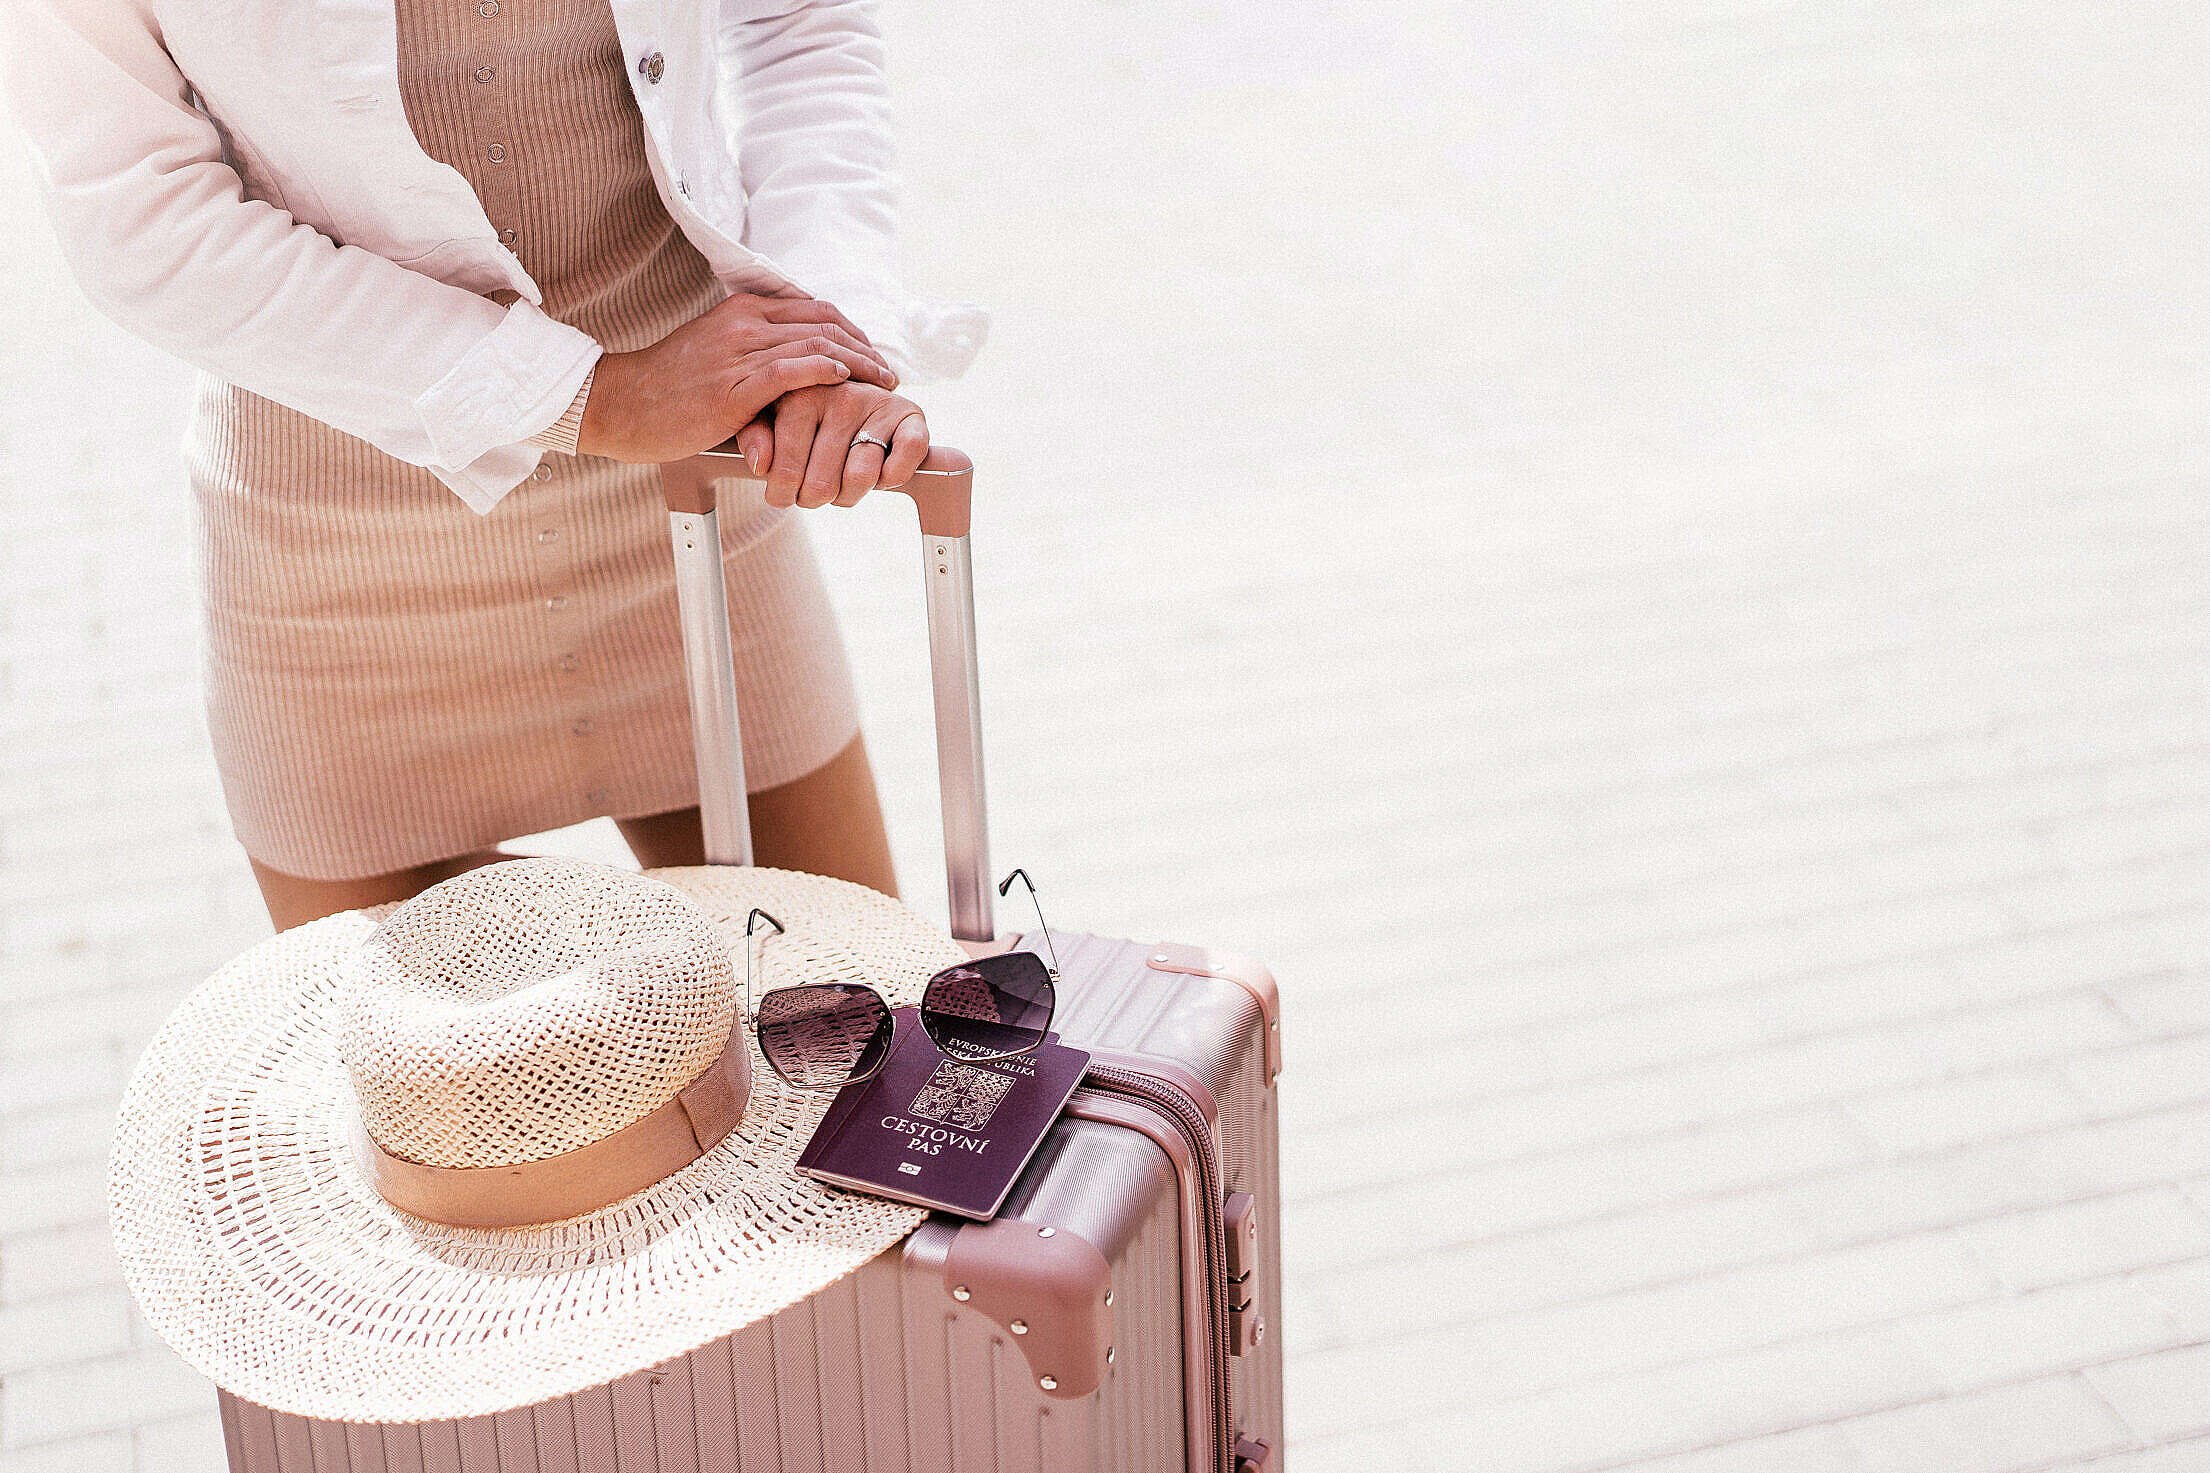 Solo Travel Woman Ready for Traveling Free Stock Photo